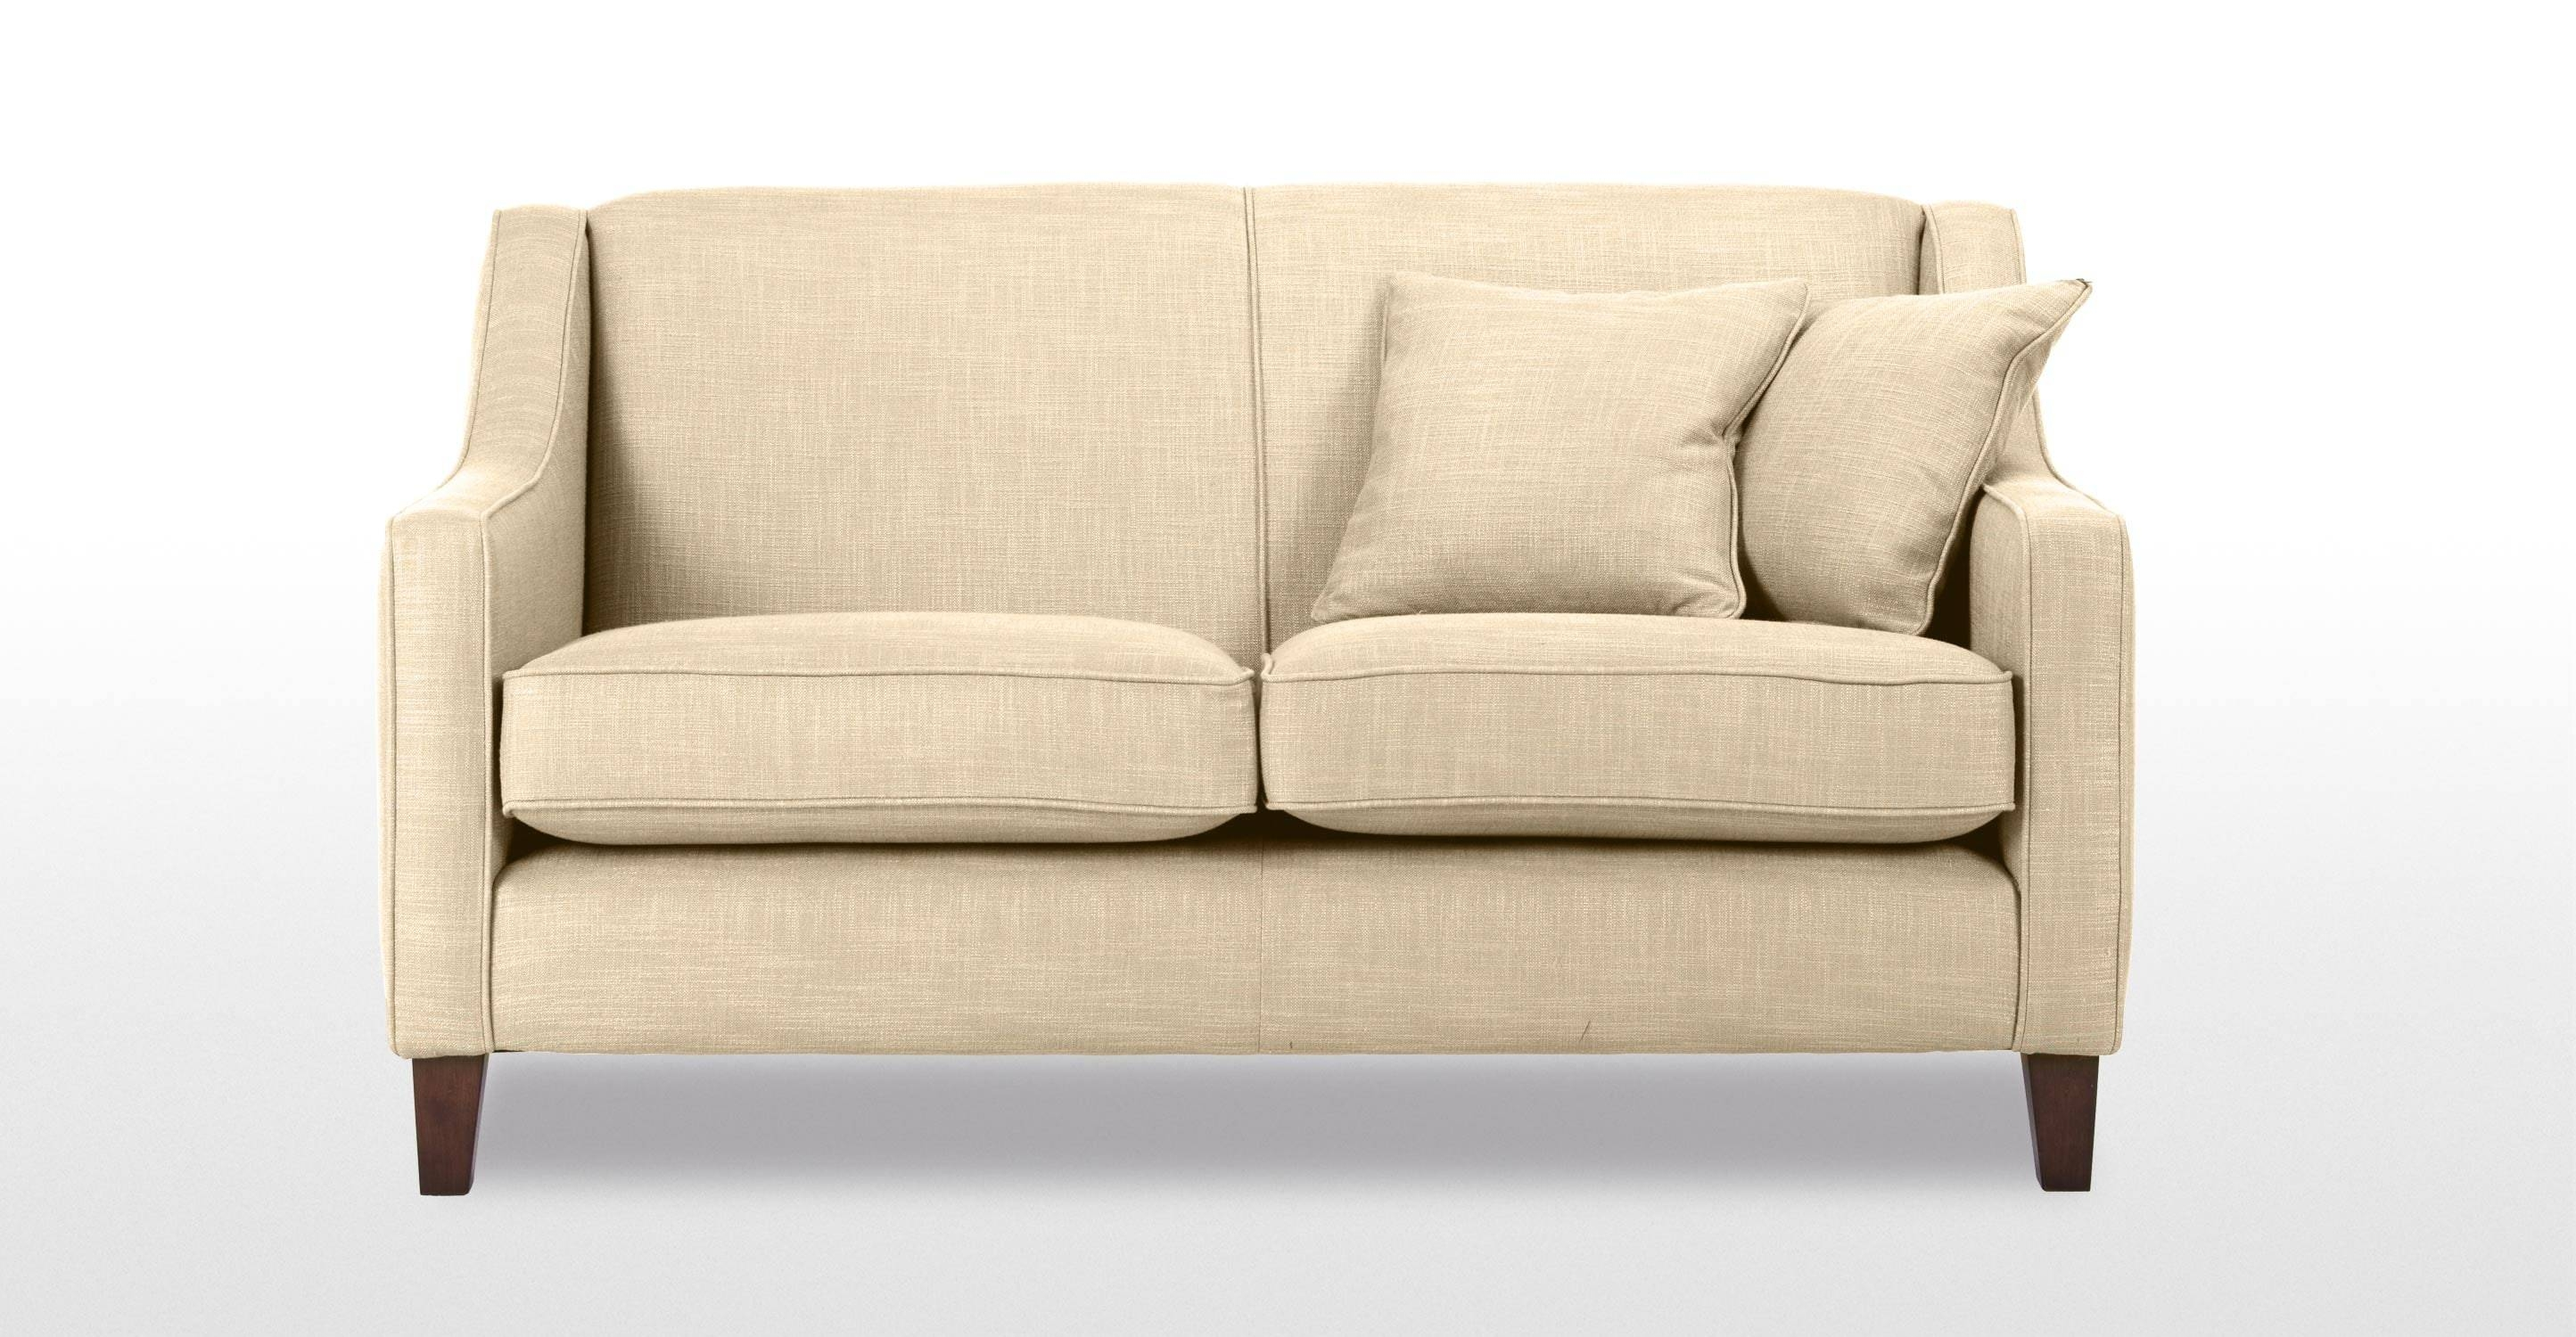 Halston 2 Seater Sofa In Cream | Made pertaining to Two Seater Chairs (Image 8 of 30)